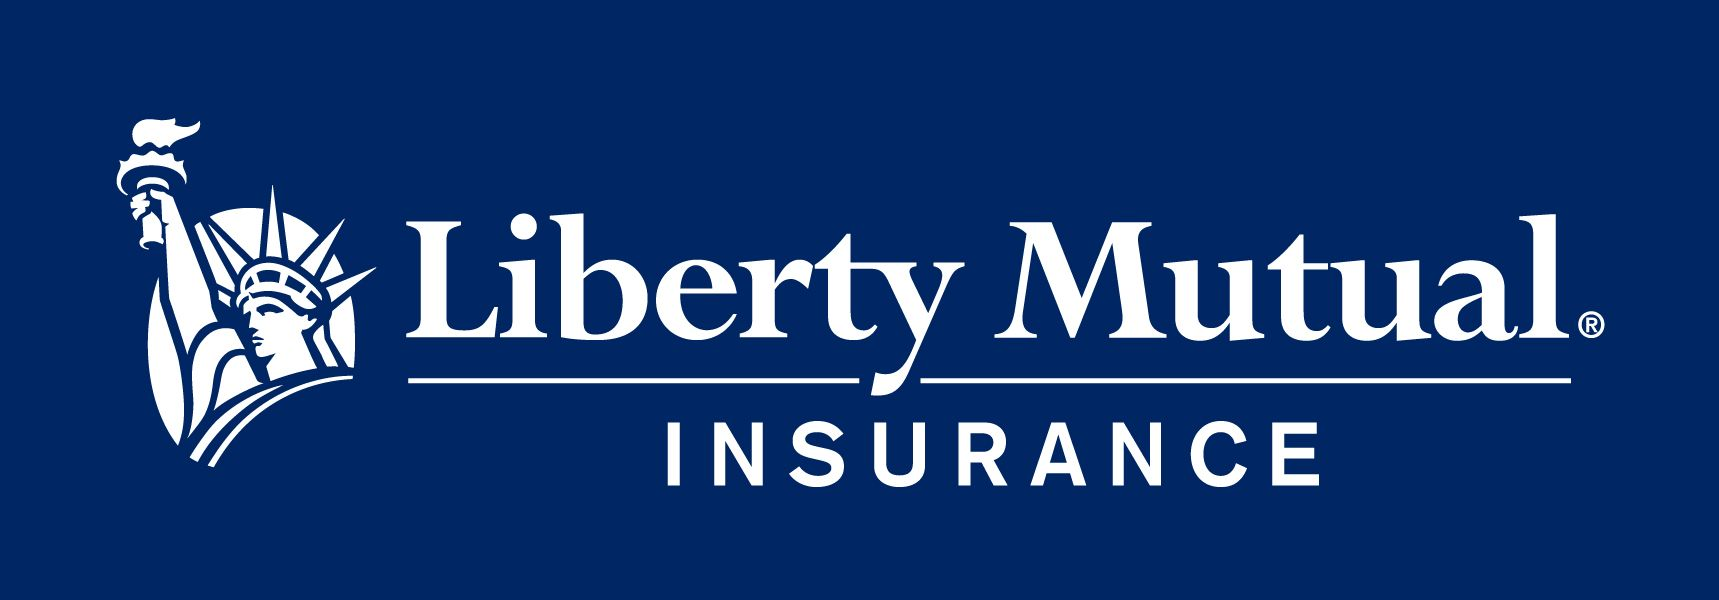 Liberty Mutual Car Insurance Quote Image Result For Liberty Mutual Insurance  Branding  Pinterest .